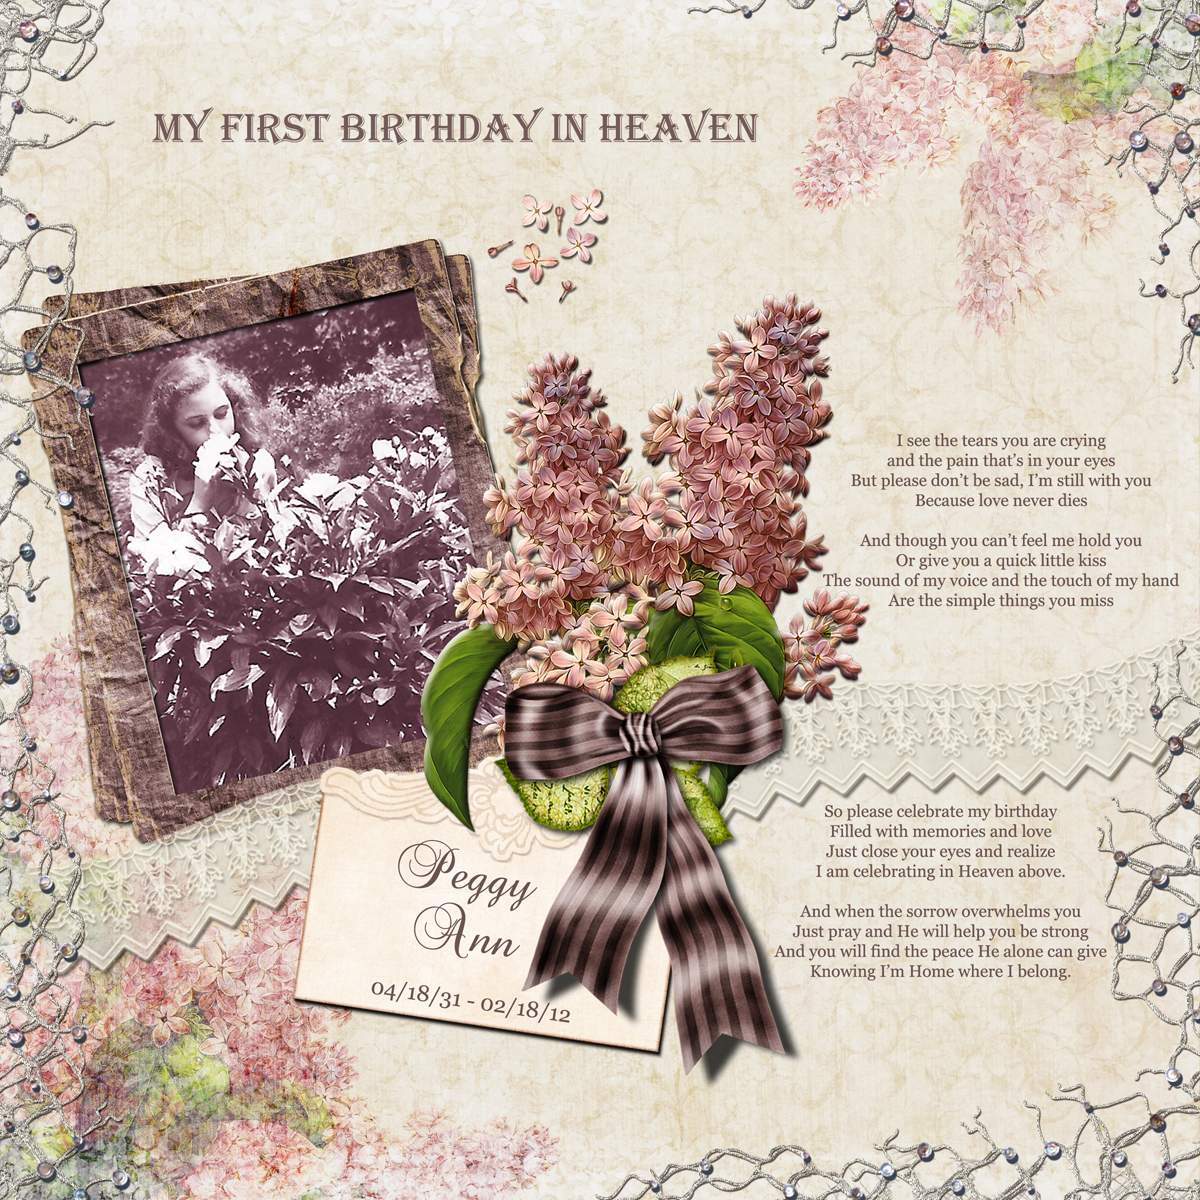 First Birthday in Heaven Quotes http://dianespages.blogspot.com/2012/04/my-first-birthday-in-heaven.html